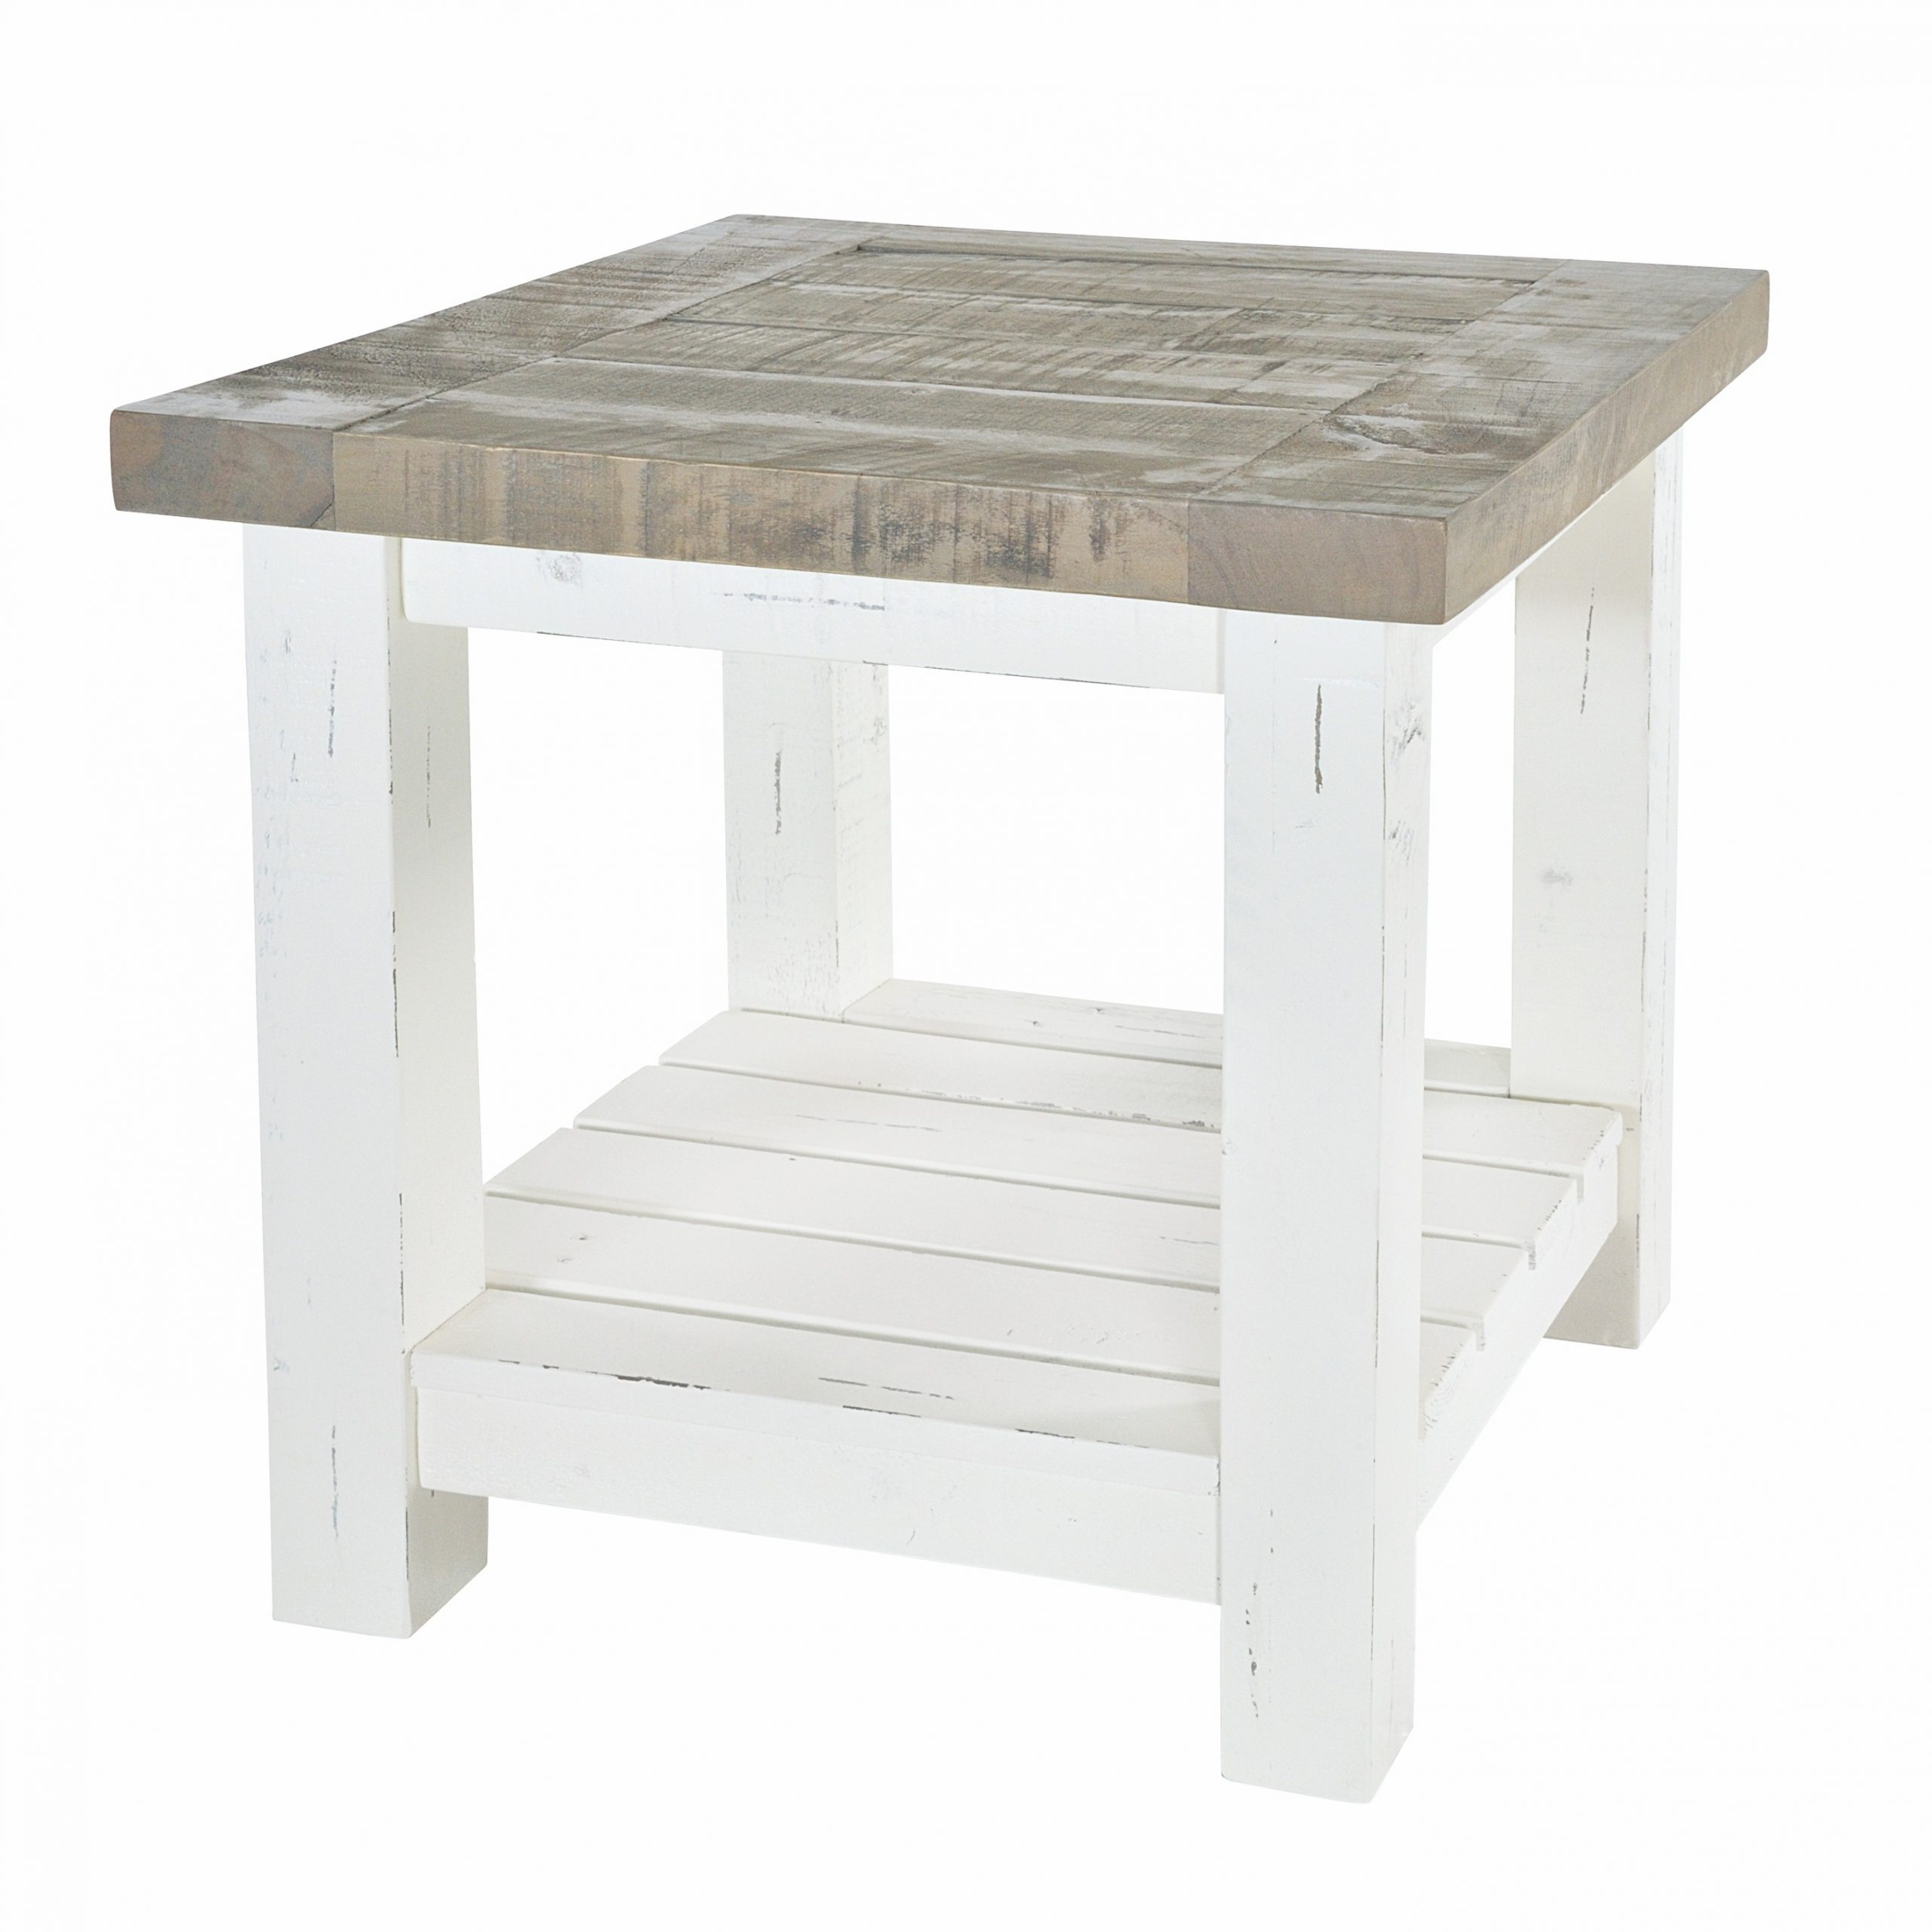 Langton Lamp Table For Most Current Langton Reclaimed Wood Dining Tables (View 10 of 25)